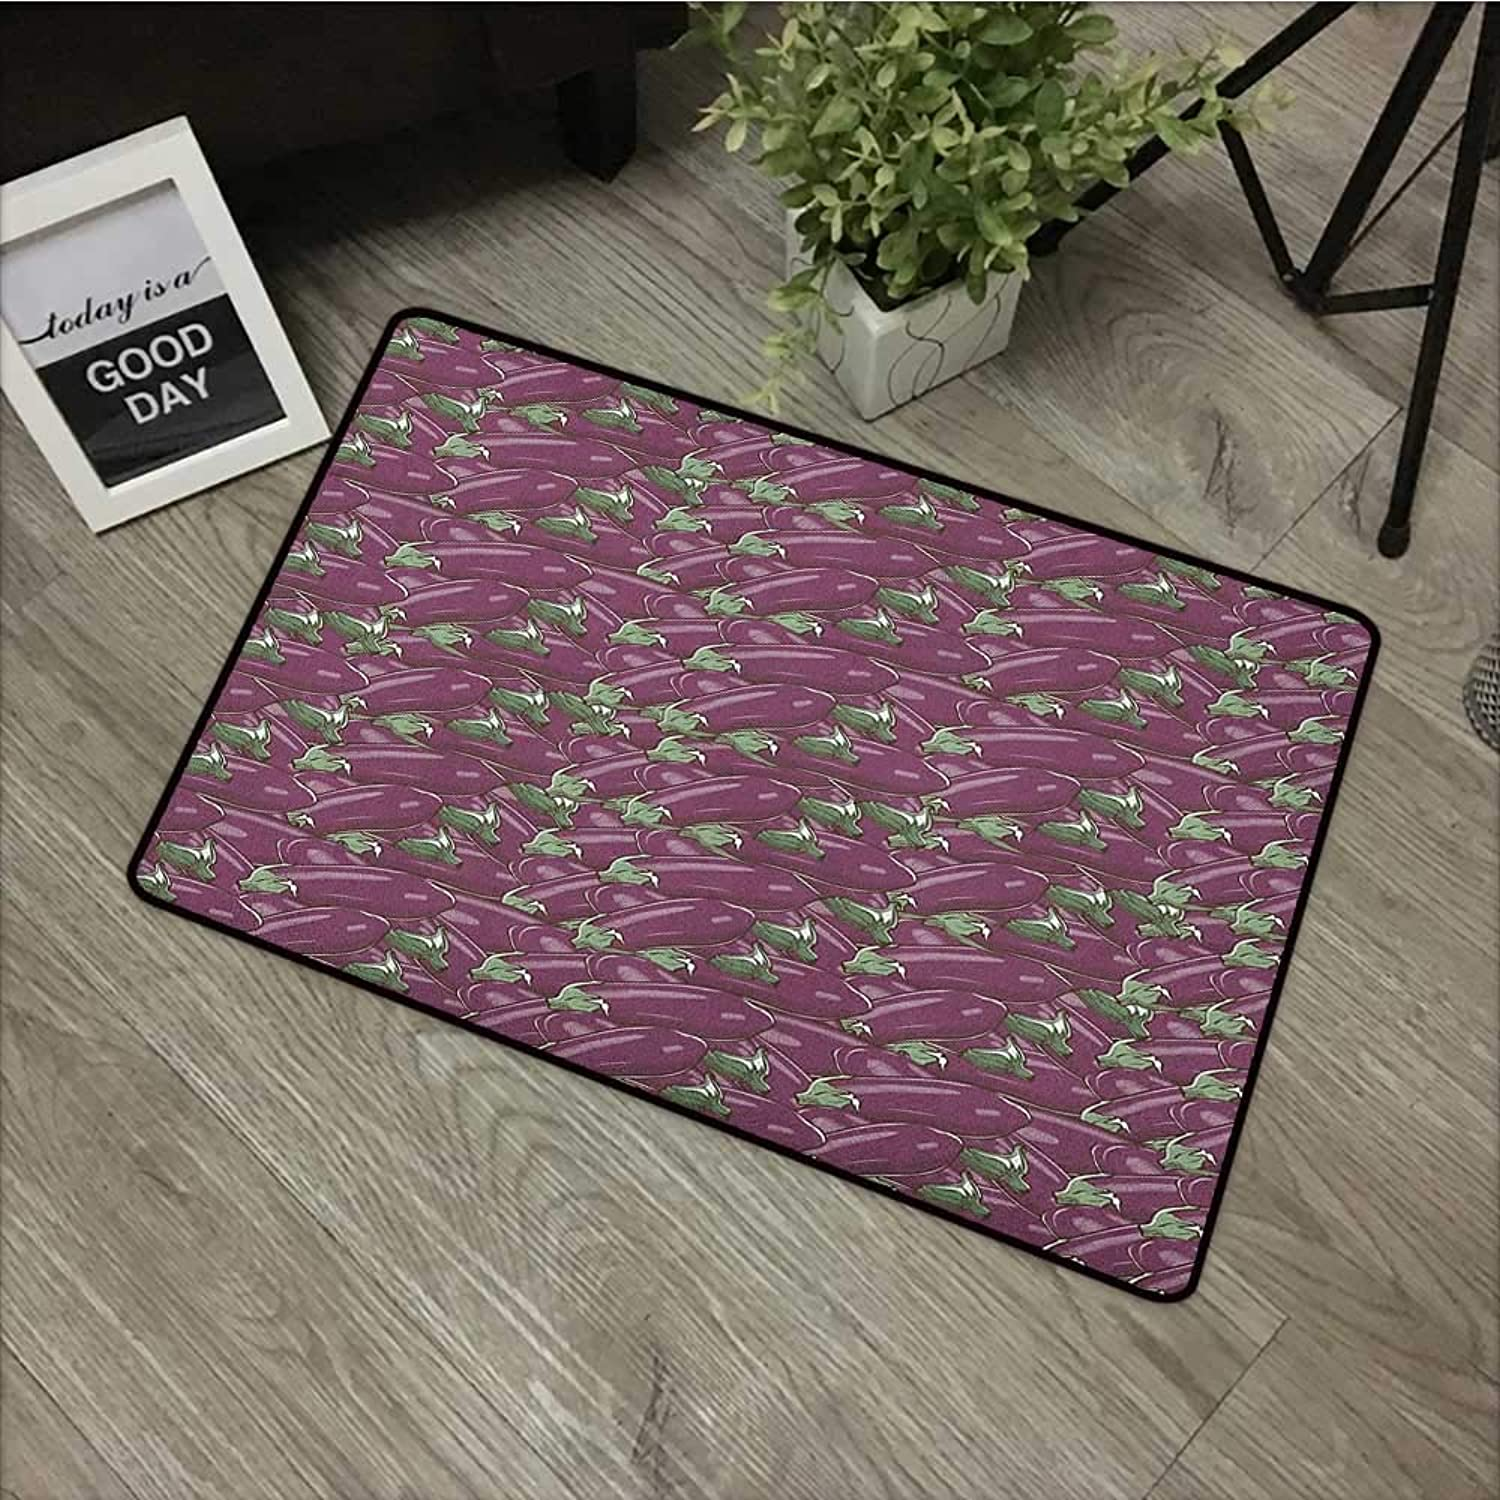 Pool Anti-Slip Door mat W35 x L59 INCH Eggplant,Retro Inspired Stacks of Delicious Eggplants Product of Nature Ingredient Cusine Food, Purple Easy to Clean, Easy to fold,Non-Slip Door Mat Carpet